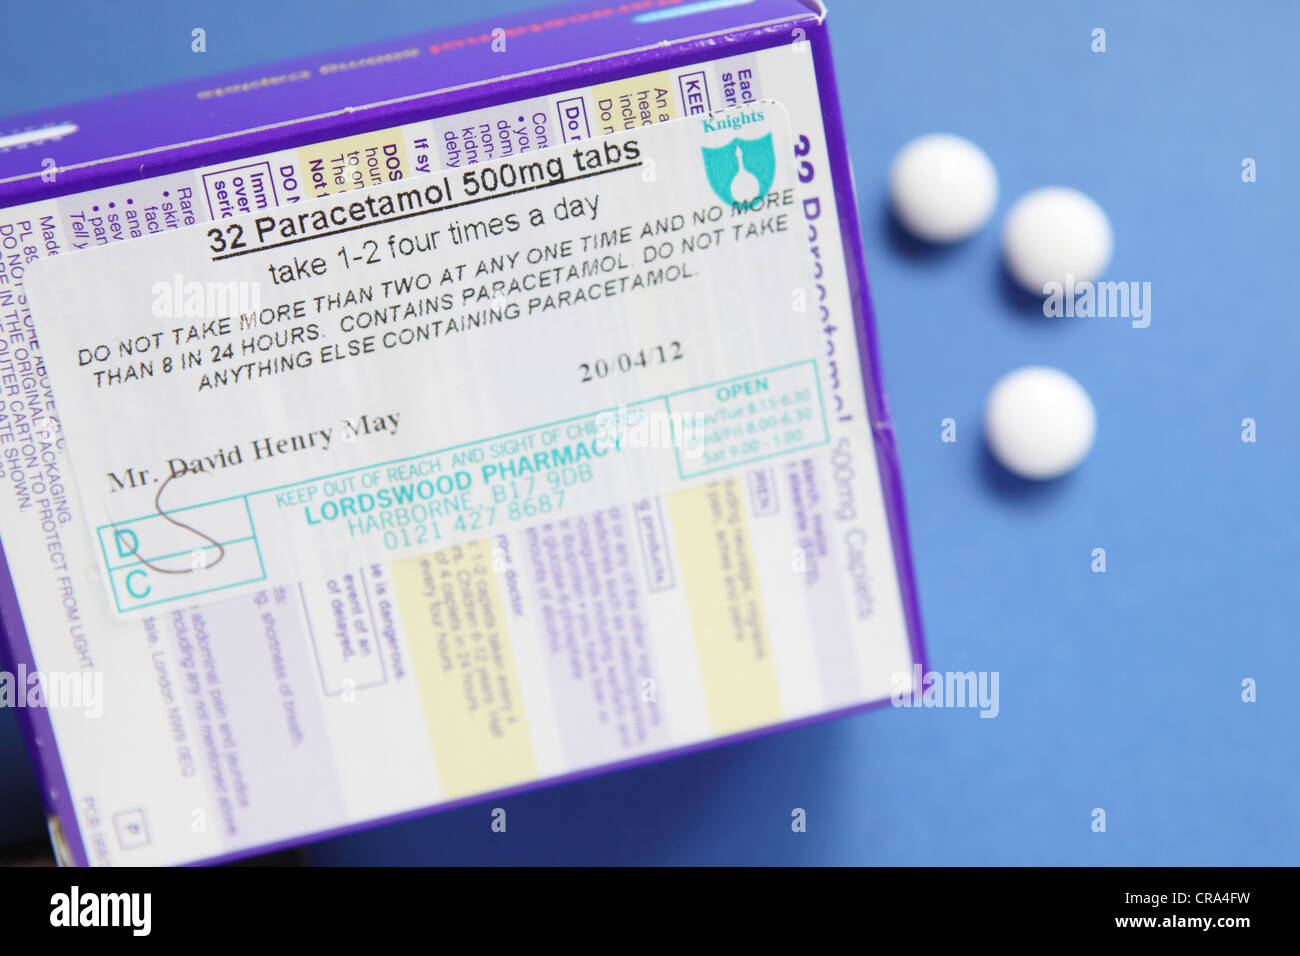 Paracetamol 500 mg tablets medication packet with patient